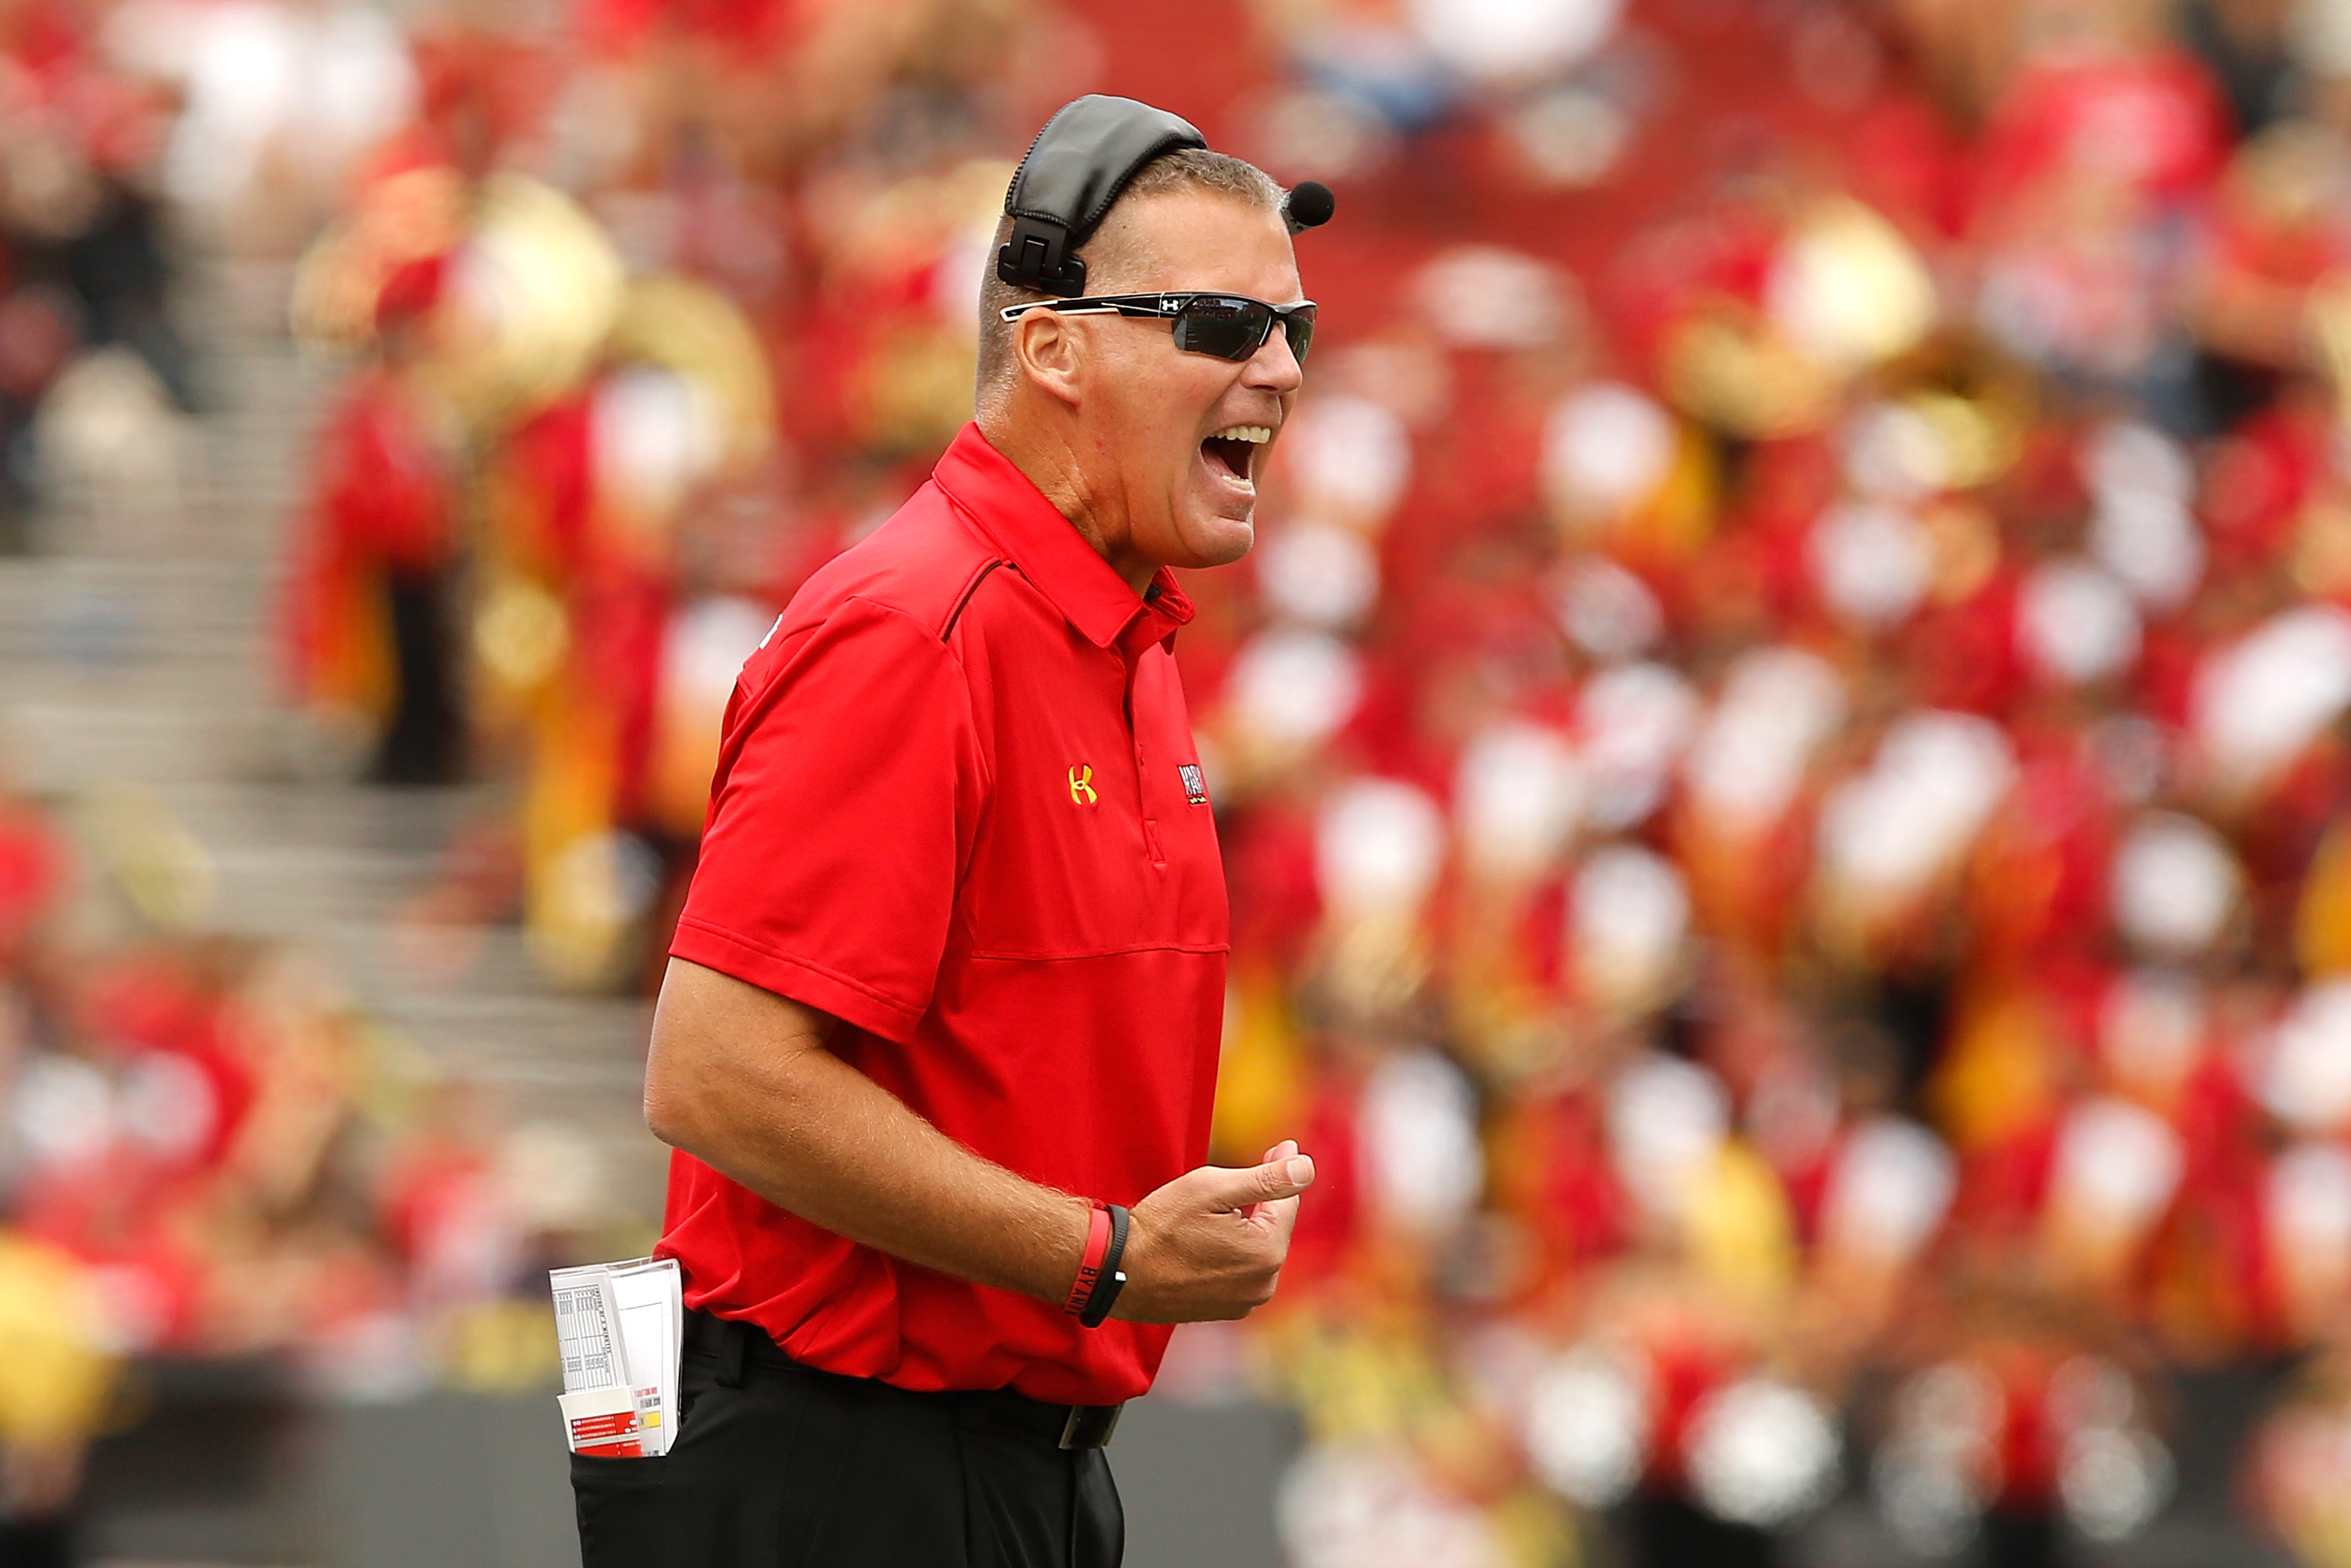 COLLEGE PARK, MD - OCTOBER 04:  Head coach Randy Edsall of the Maryland Terrapins yells to his players during the second half of their 52-24 loss to the Ohio State Buckeyes at Byrd Stadium on October 4, 2014 in College Park, Maryland.  (Photo by Jonathan Ernst/Getty Images)